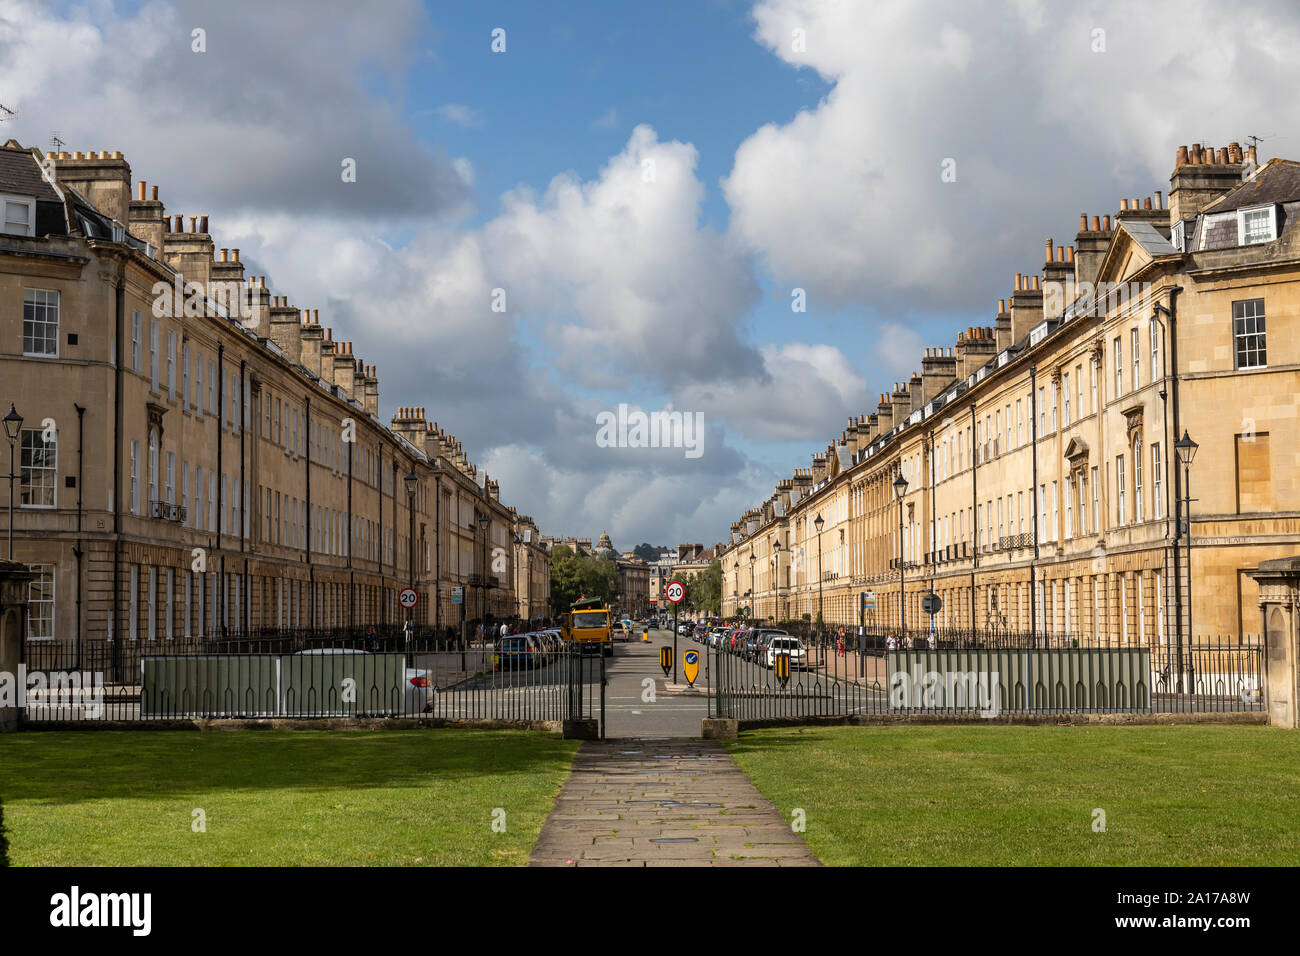 Great Pulteney Street as photographed from The Holburne Museum of Art, Bath, Somerset, UK Stock Photo